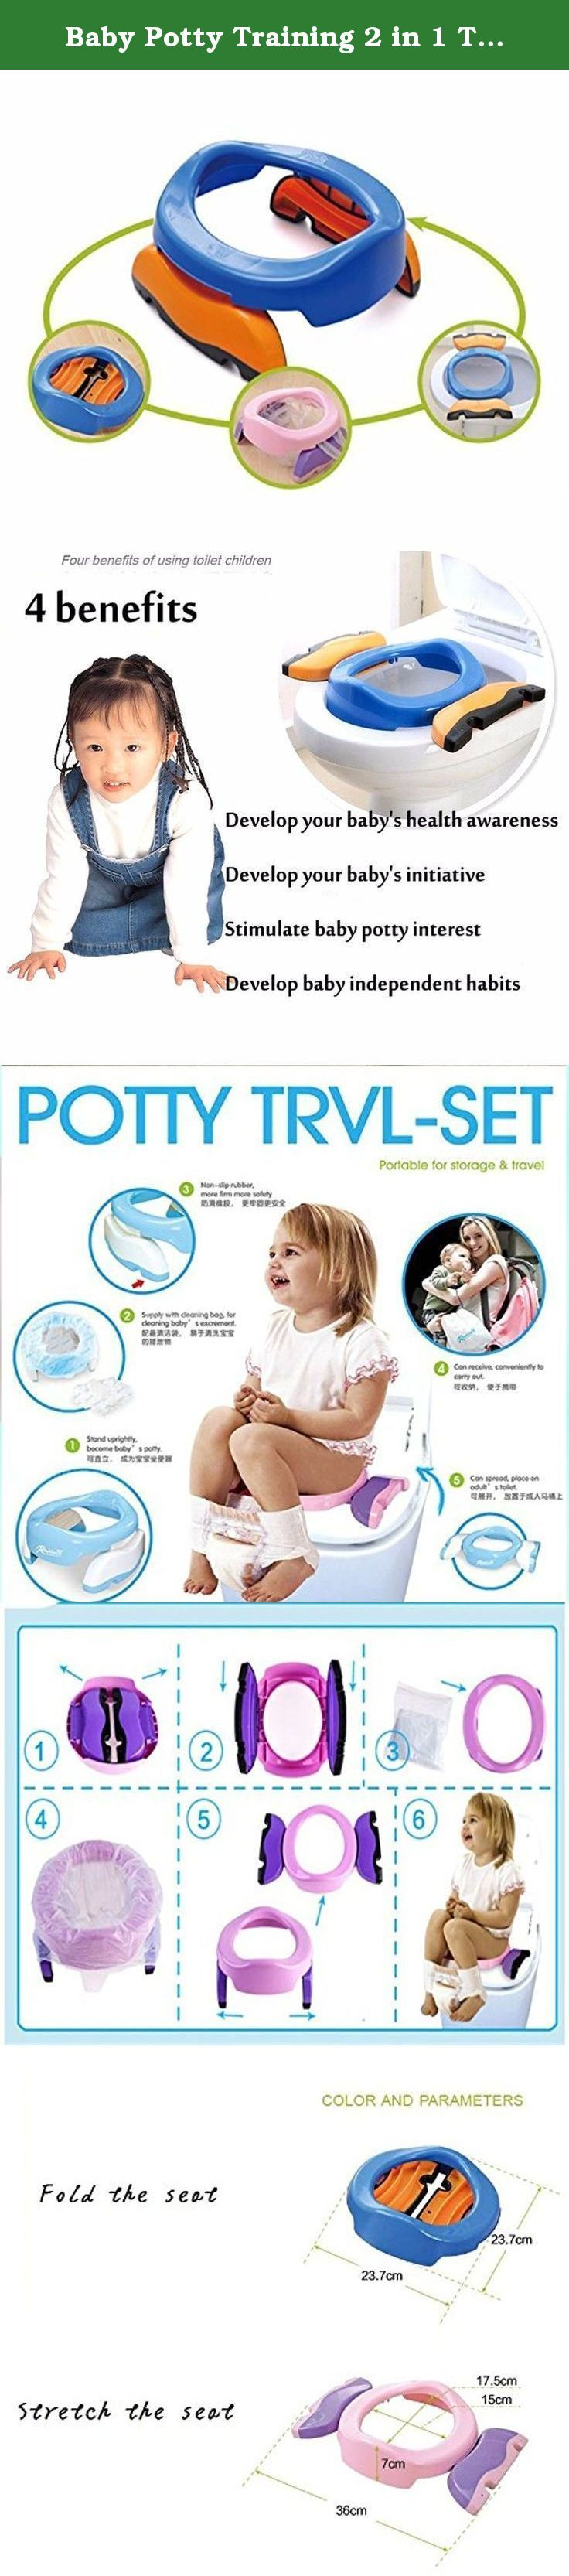 Baby Potty Training 2 in 1 Toilet Training seat & Seat Cover Foldable Travel Potties Pink Color for Girl age 2 years and Up to 60lbs. Baby Potty Training 2 in 1 Toilet Training seat & Seat Cover Foldable Travel Potties Pink Color for Girl age 2 years and Up to 60lbs.